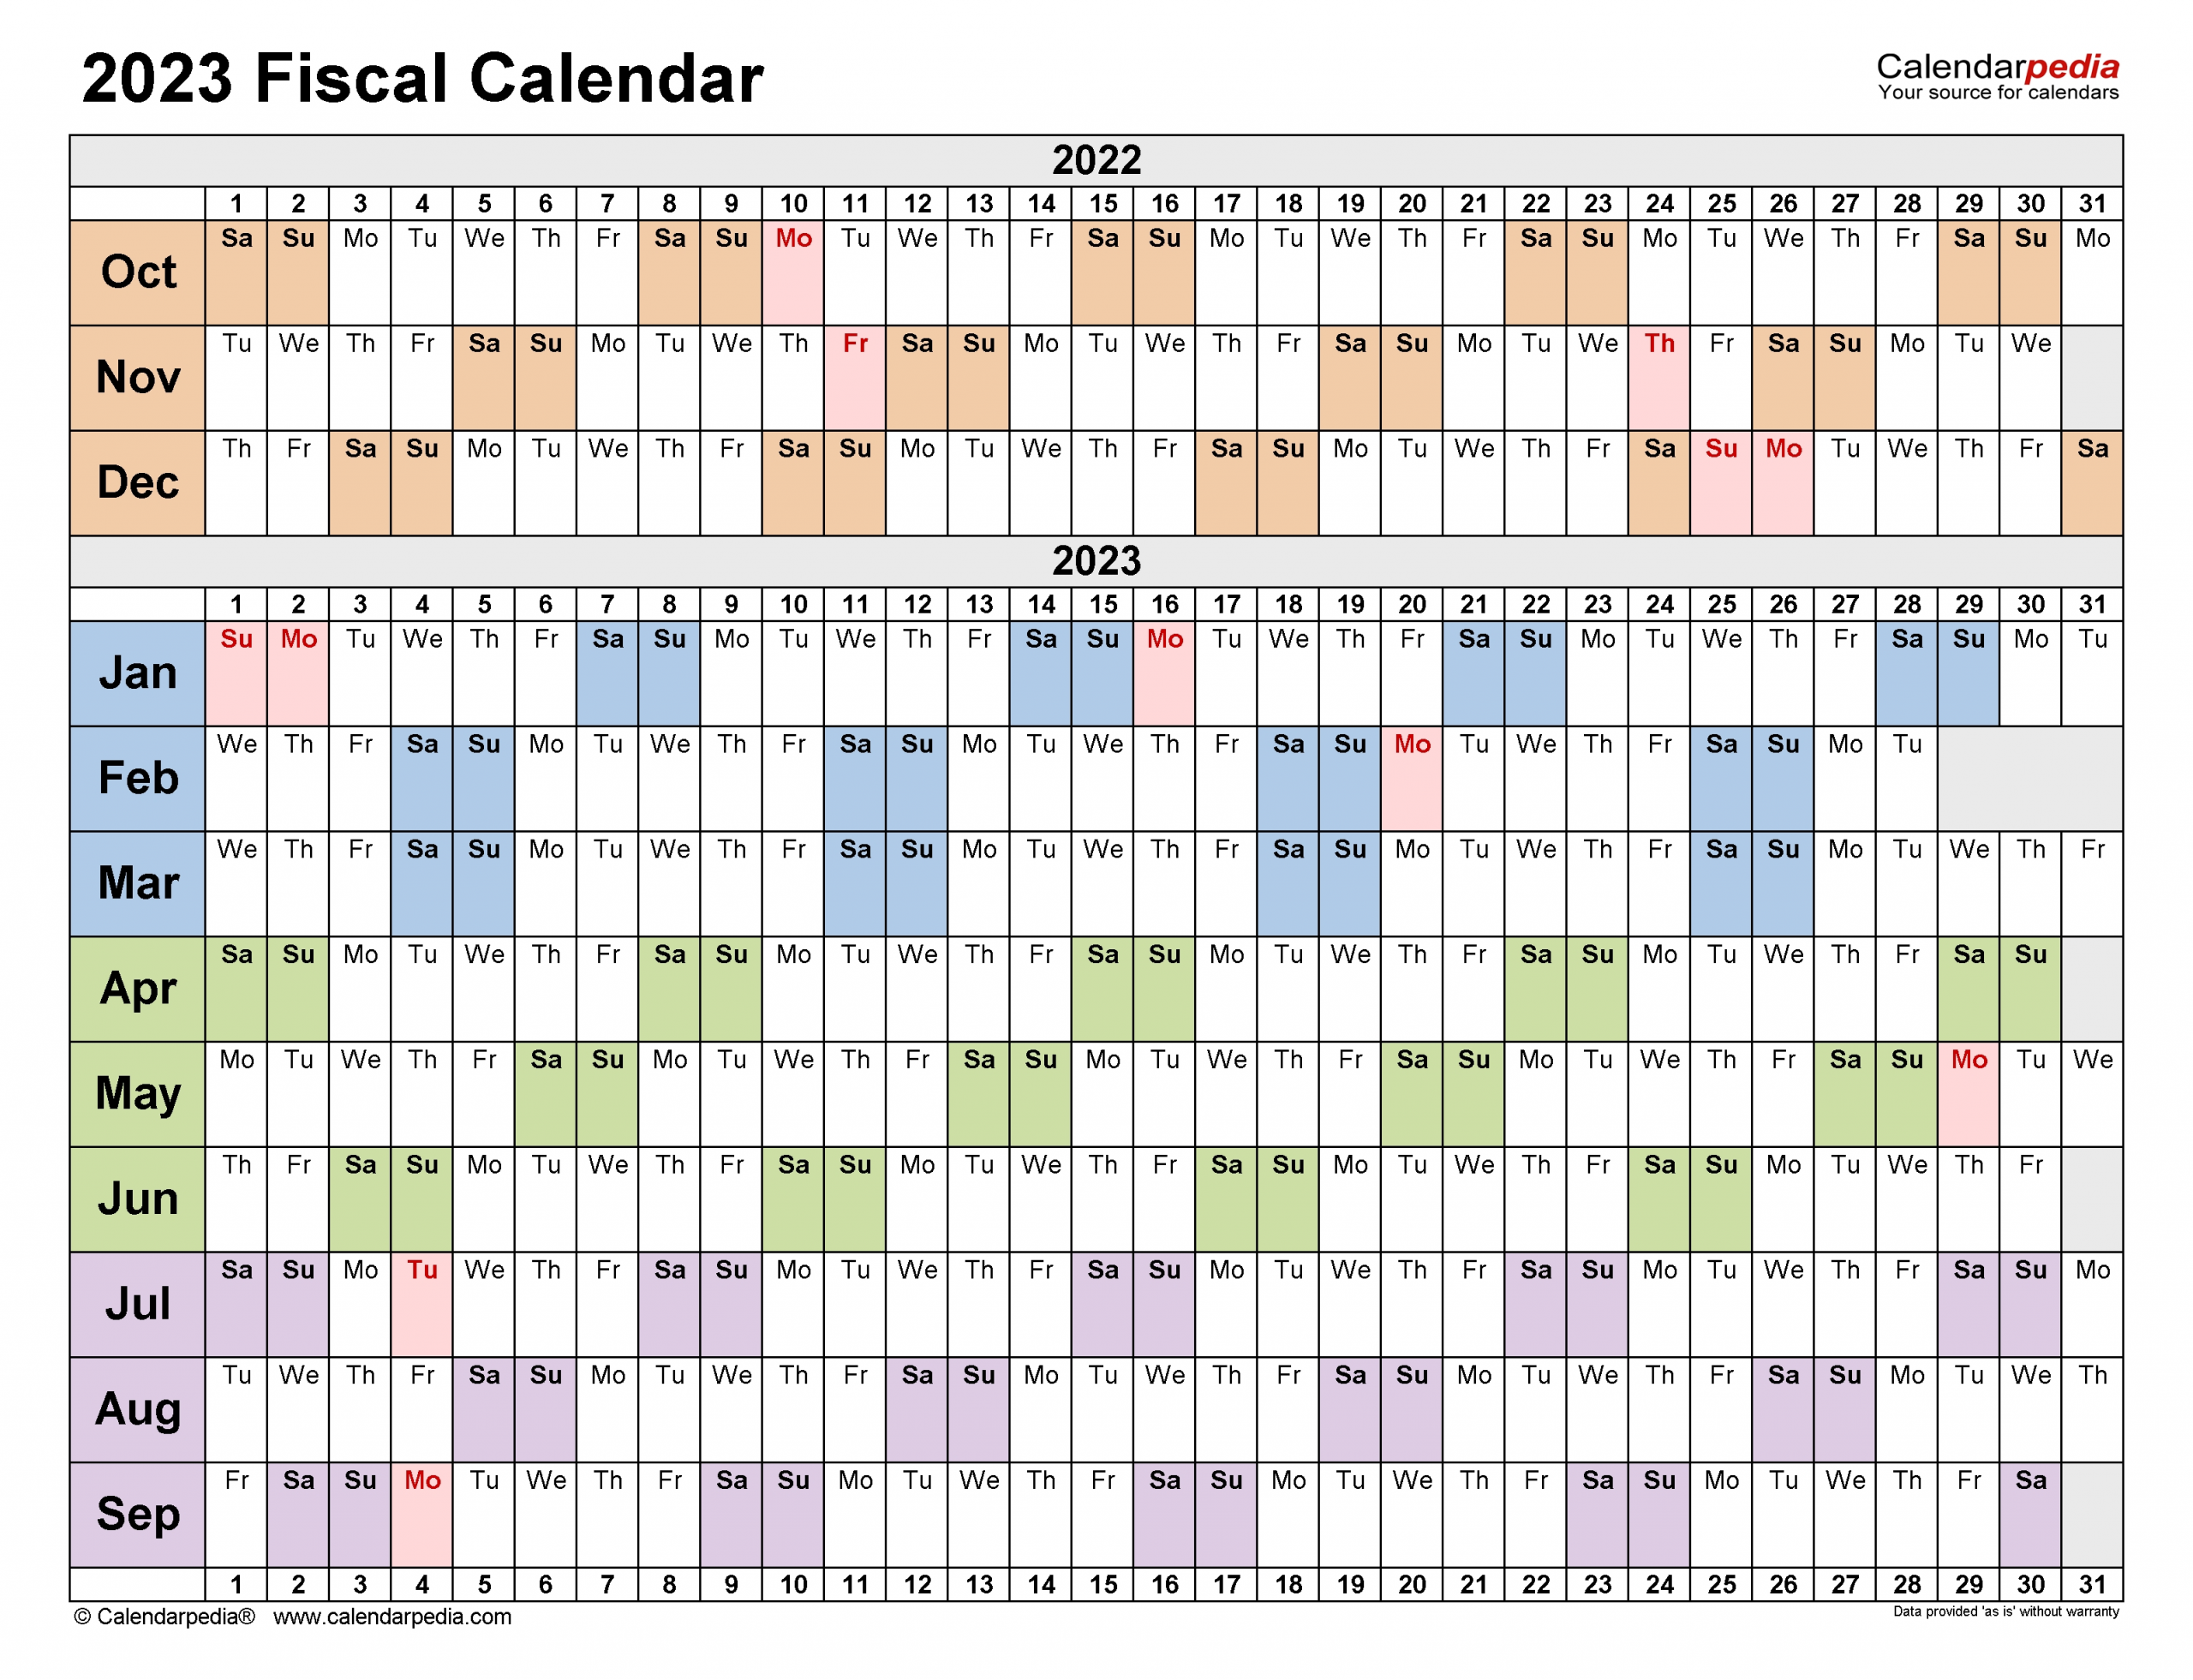 Get Government 2023 Fiscal Calendar